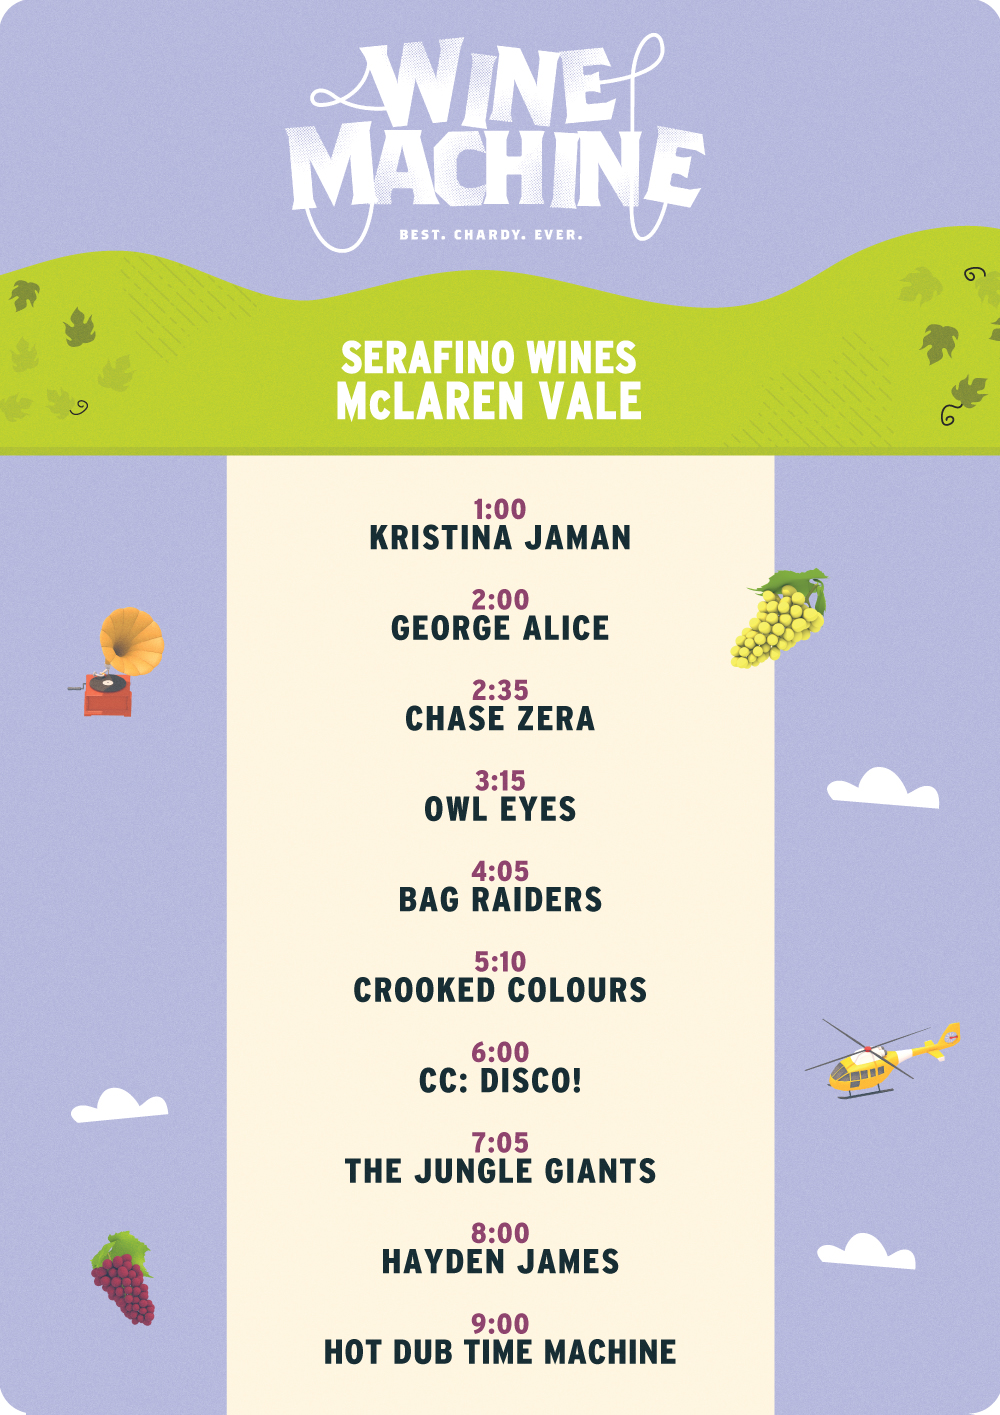 Wine machine set times mclaren vale